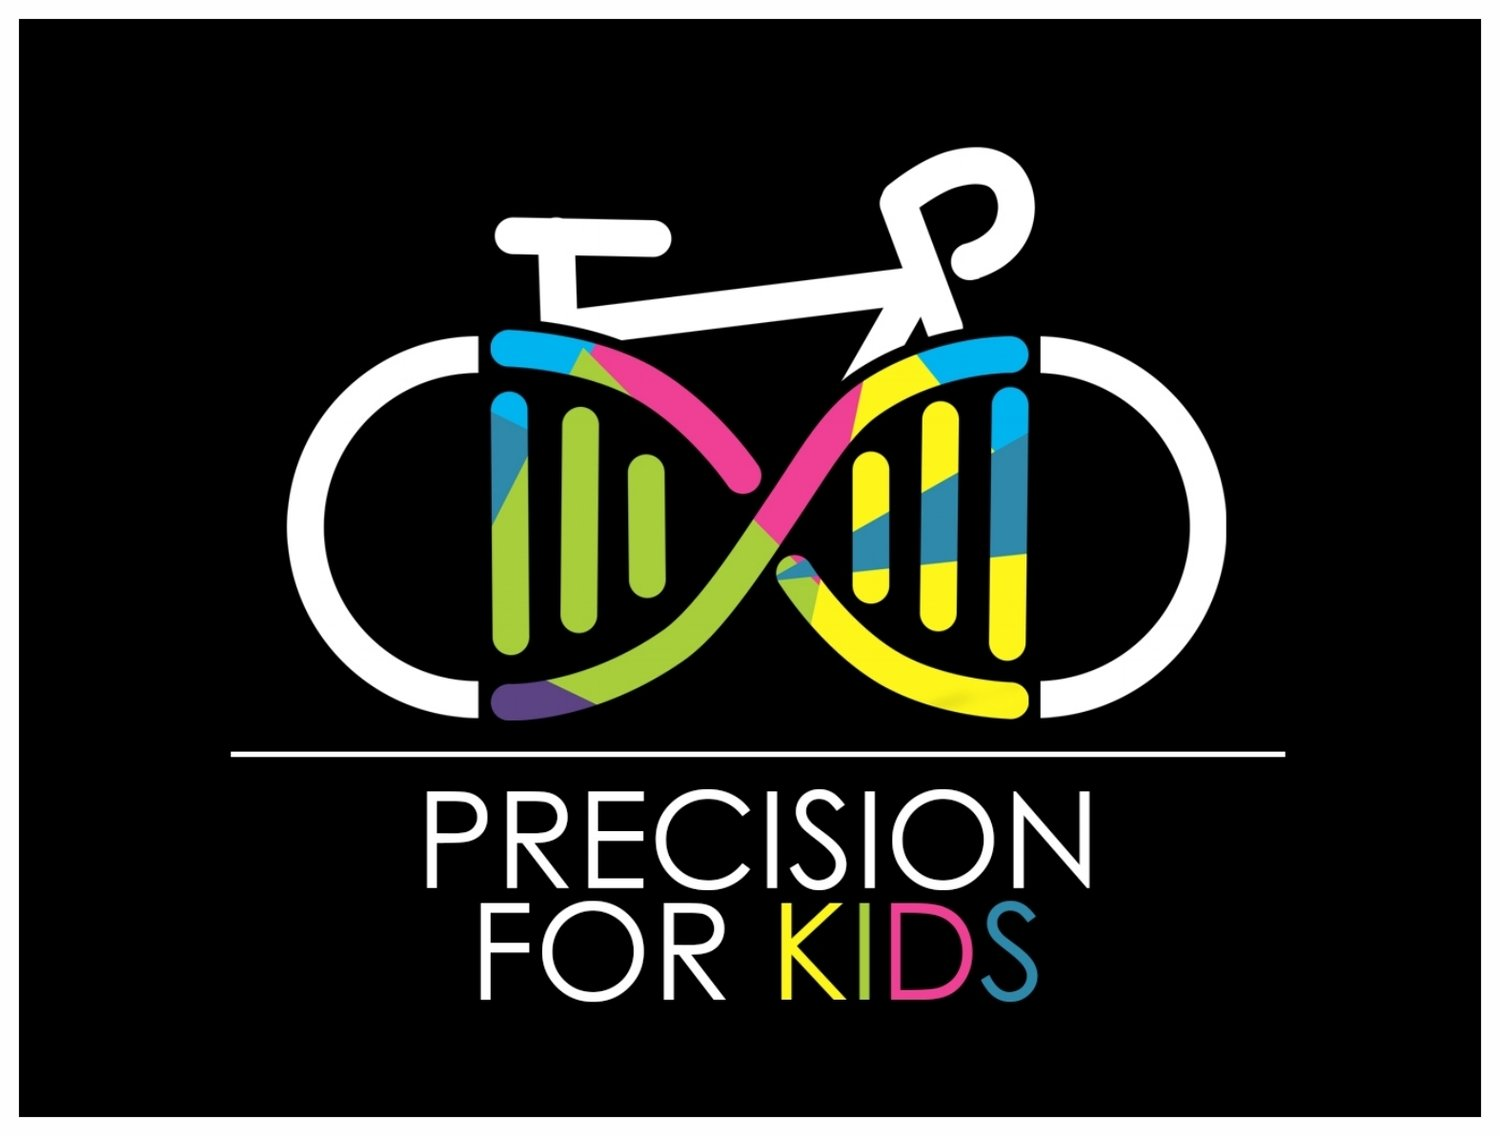 Precision for Kids